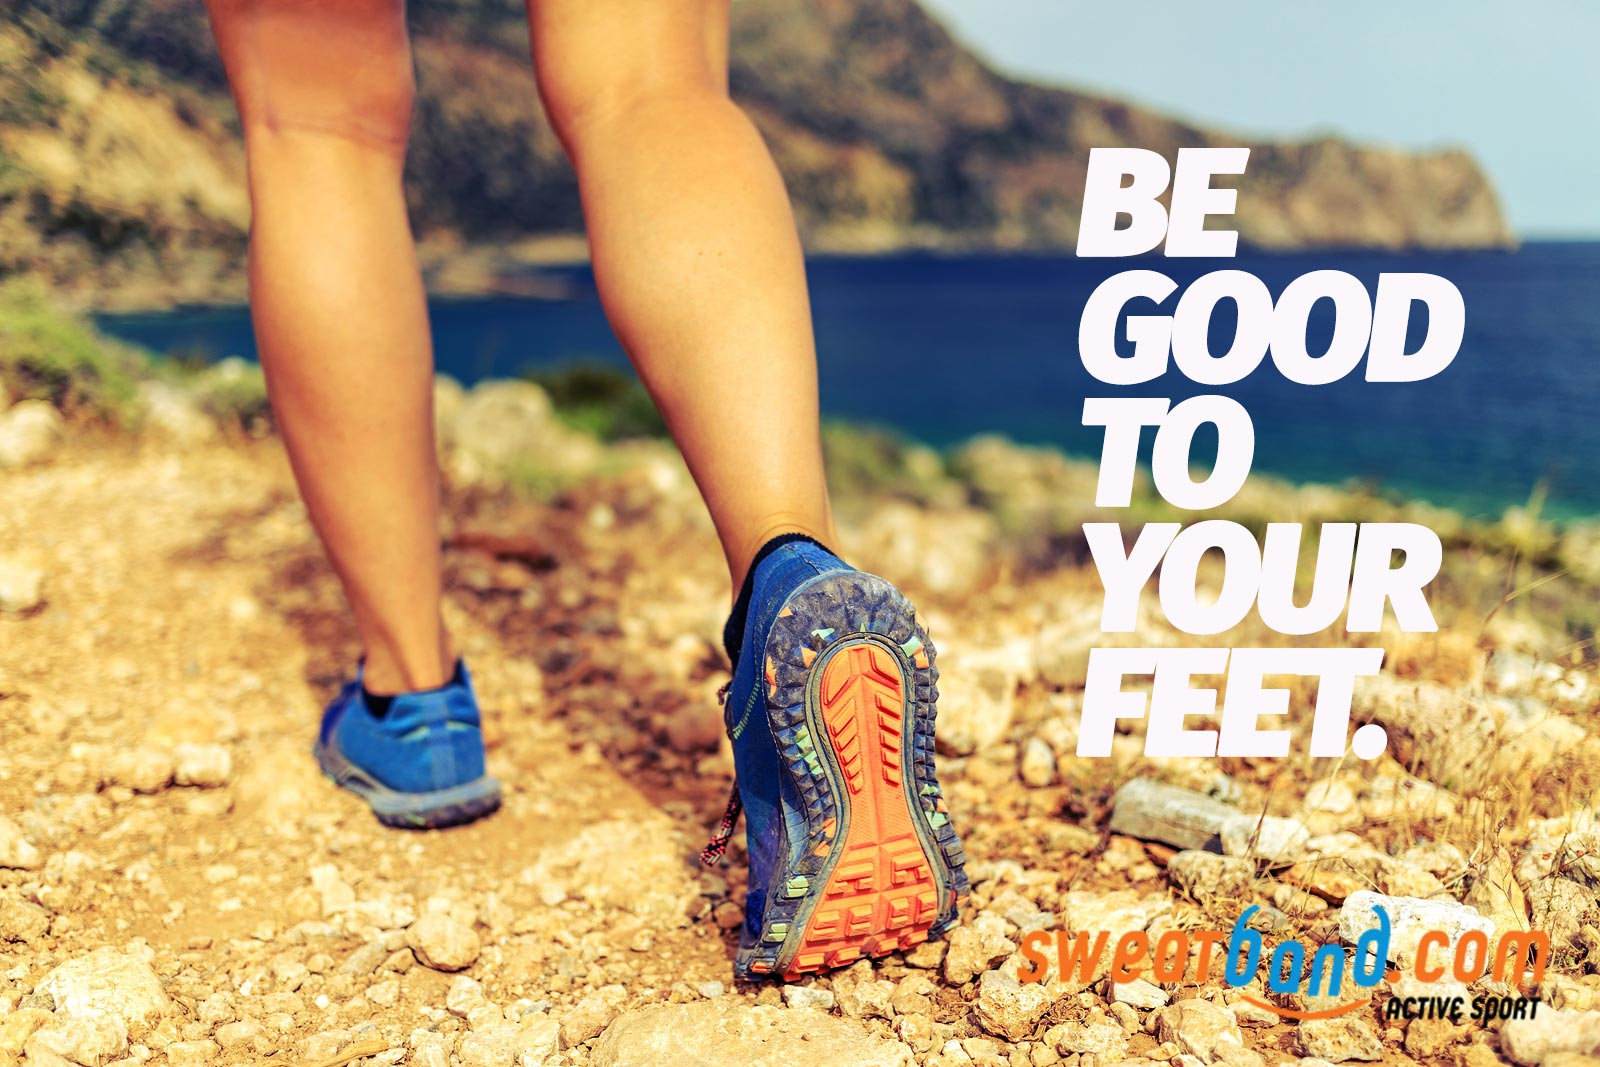 Be good to your feet no matter what sport you play or fitness training you do.